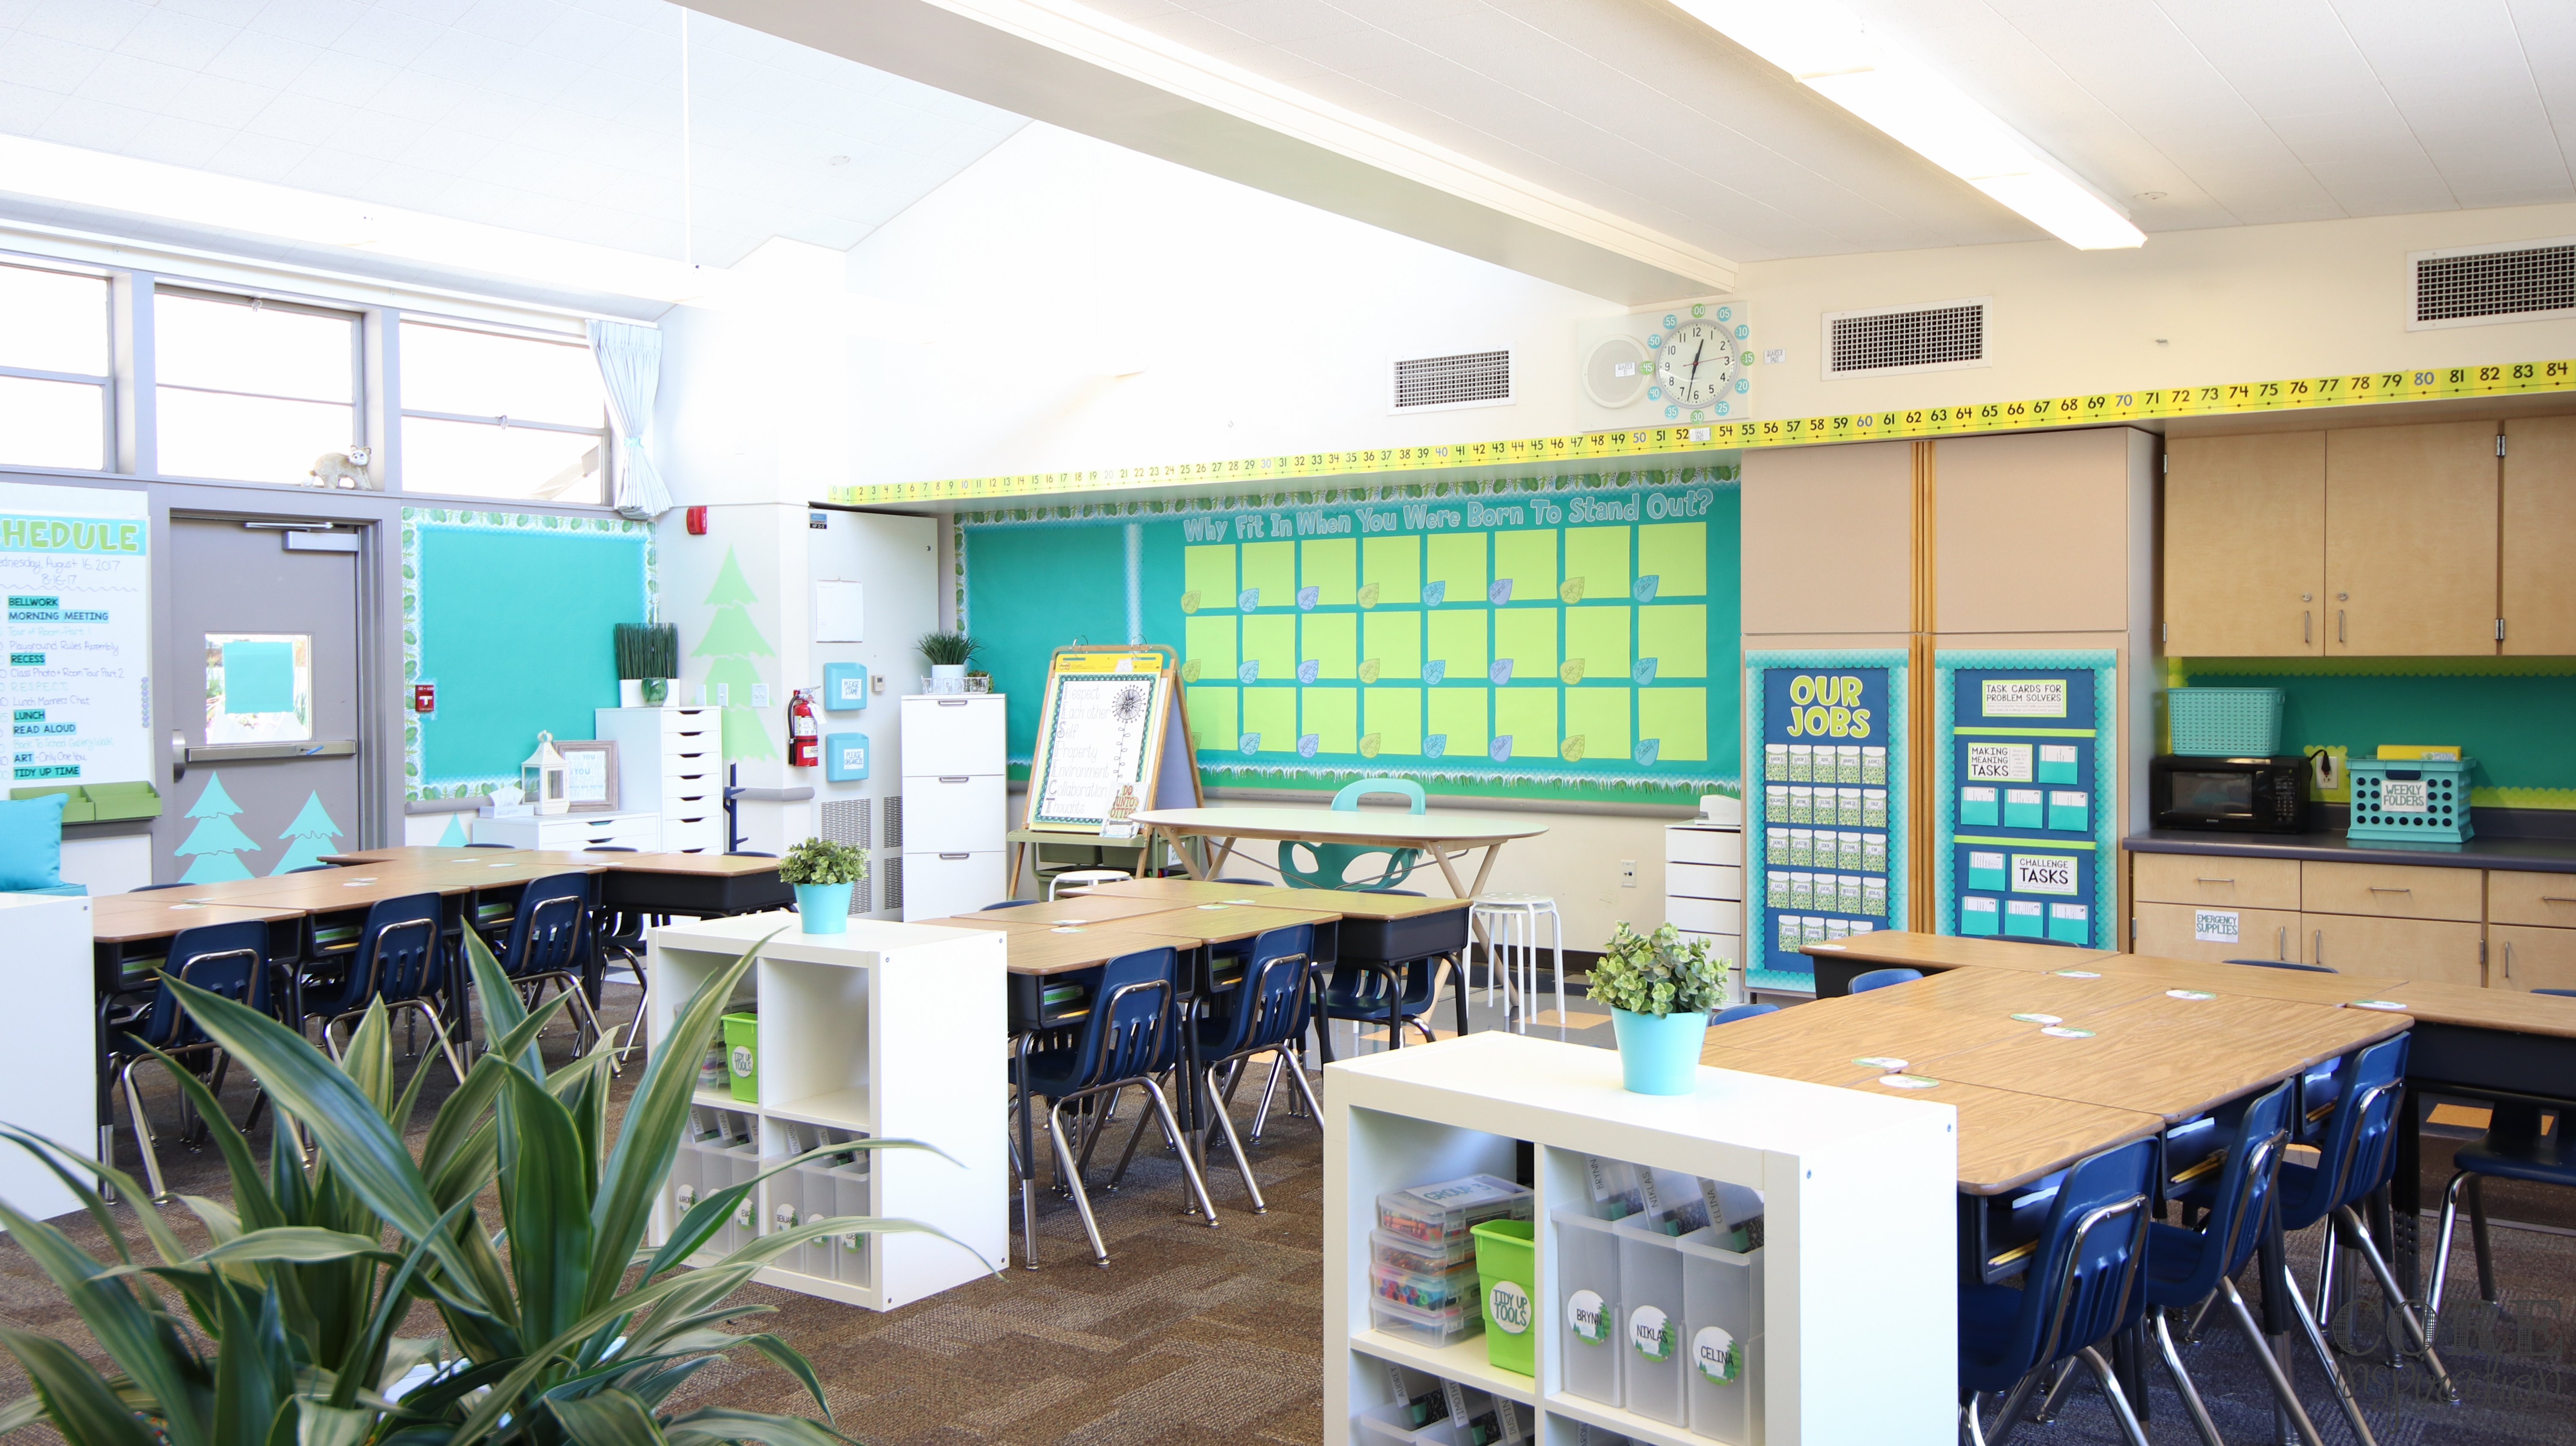 Core inspiration classroom reveal, back of the classroom